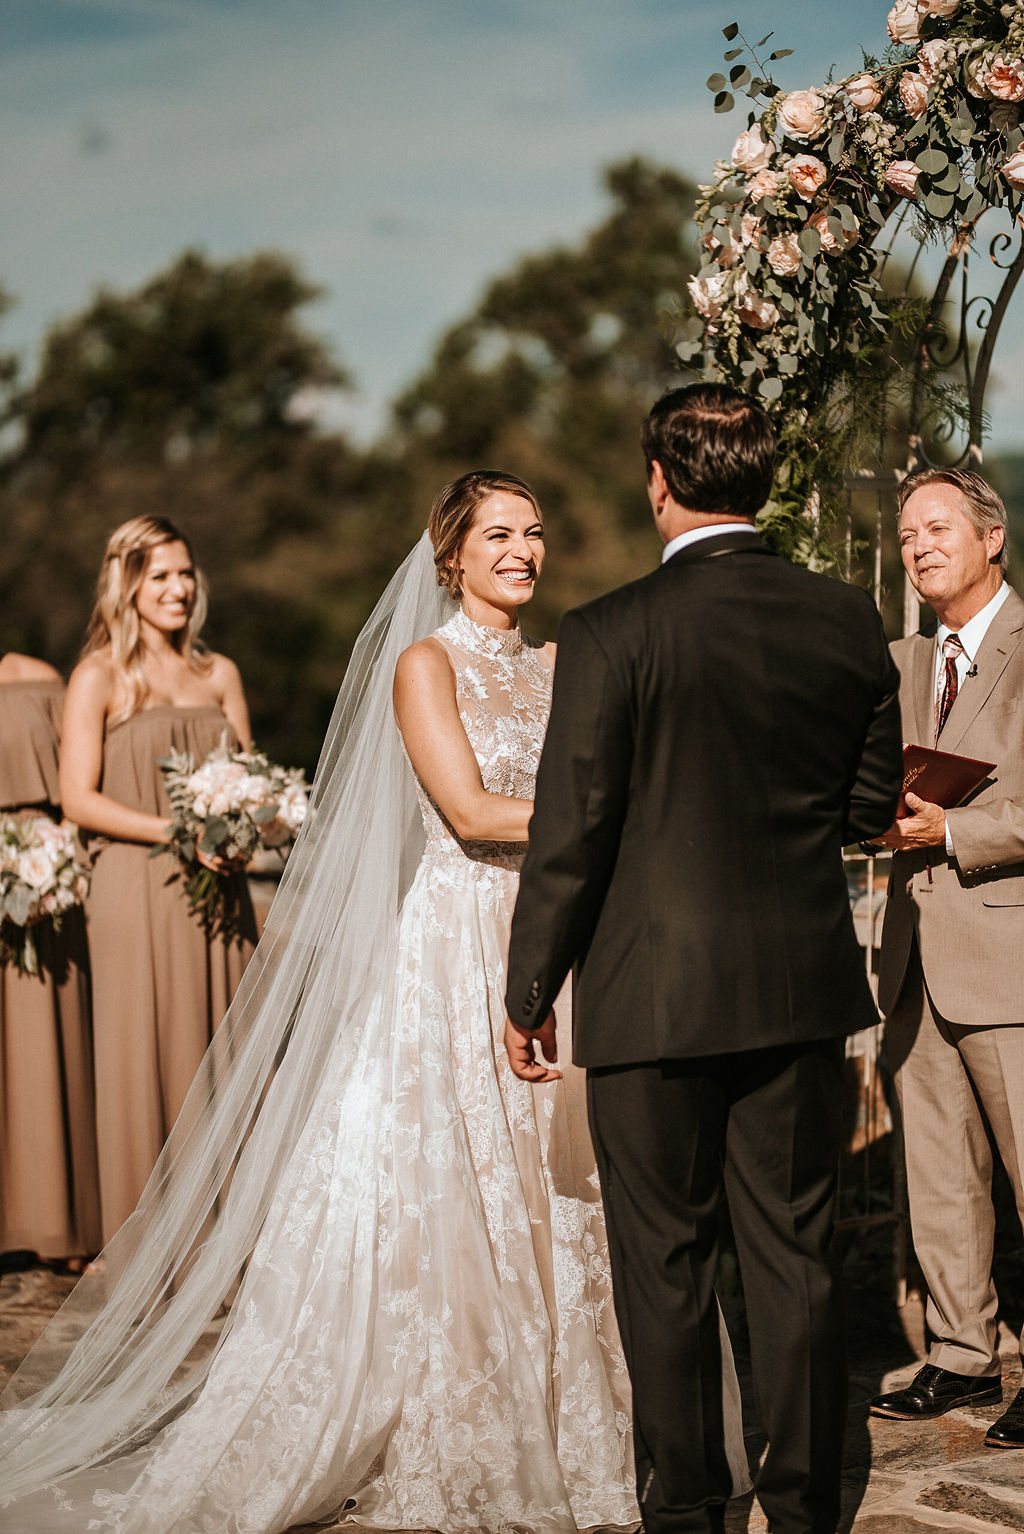 Bride smiling at the groom at the alter at Bluemont Vineyard